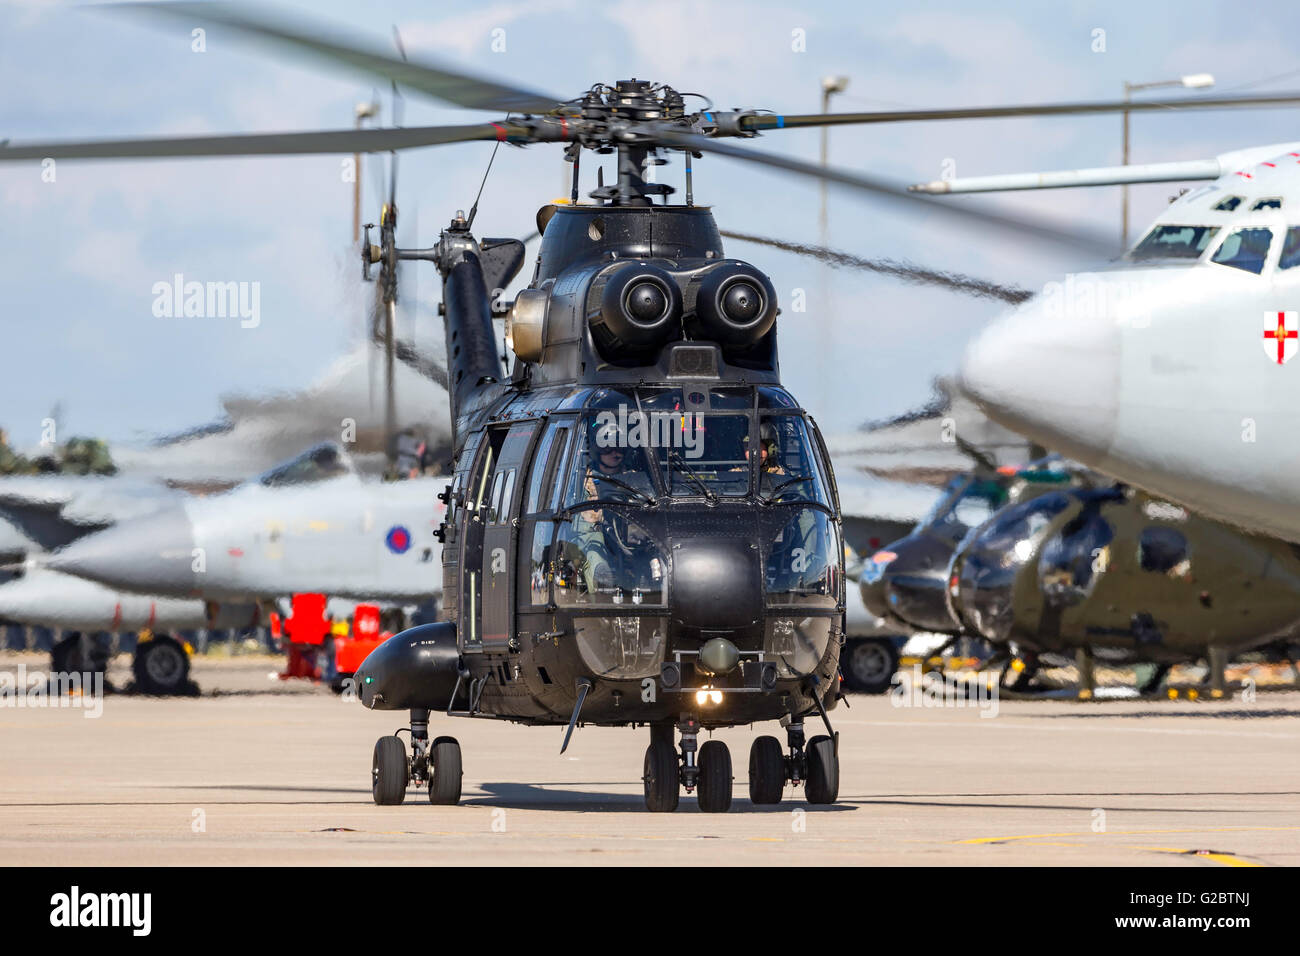 Royal Air Force (RAF) Aerospatiale (Eurocopter) SA 330E Puma HC.2 Helicopter from 230 Squadron based at RAF Benson